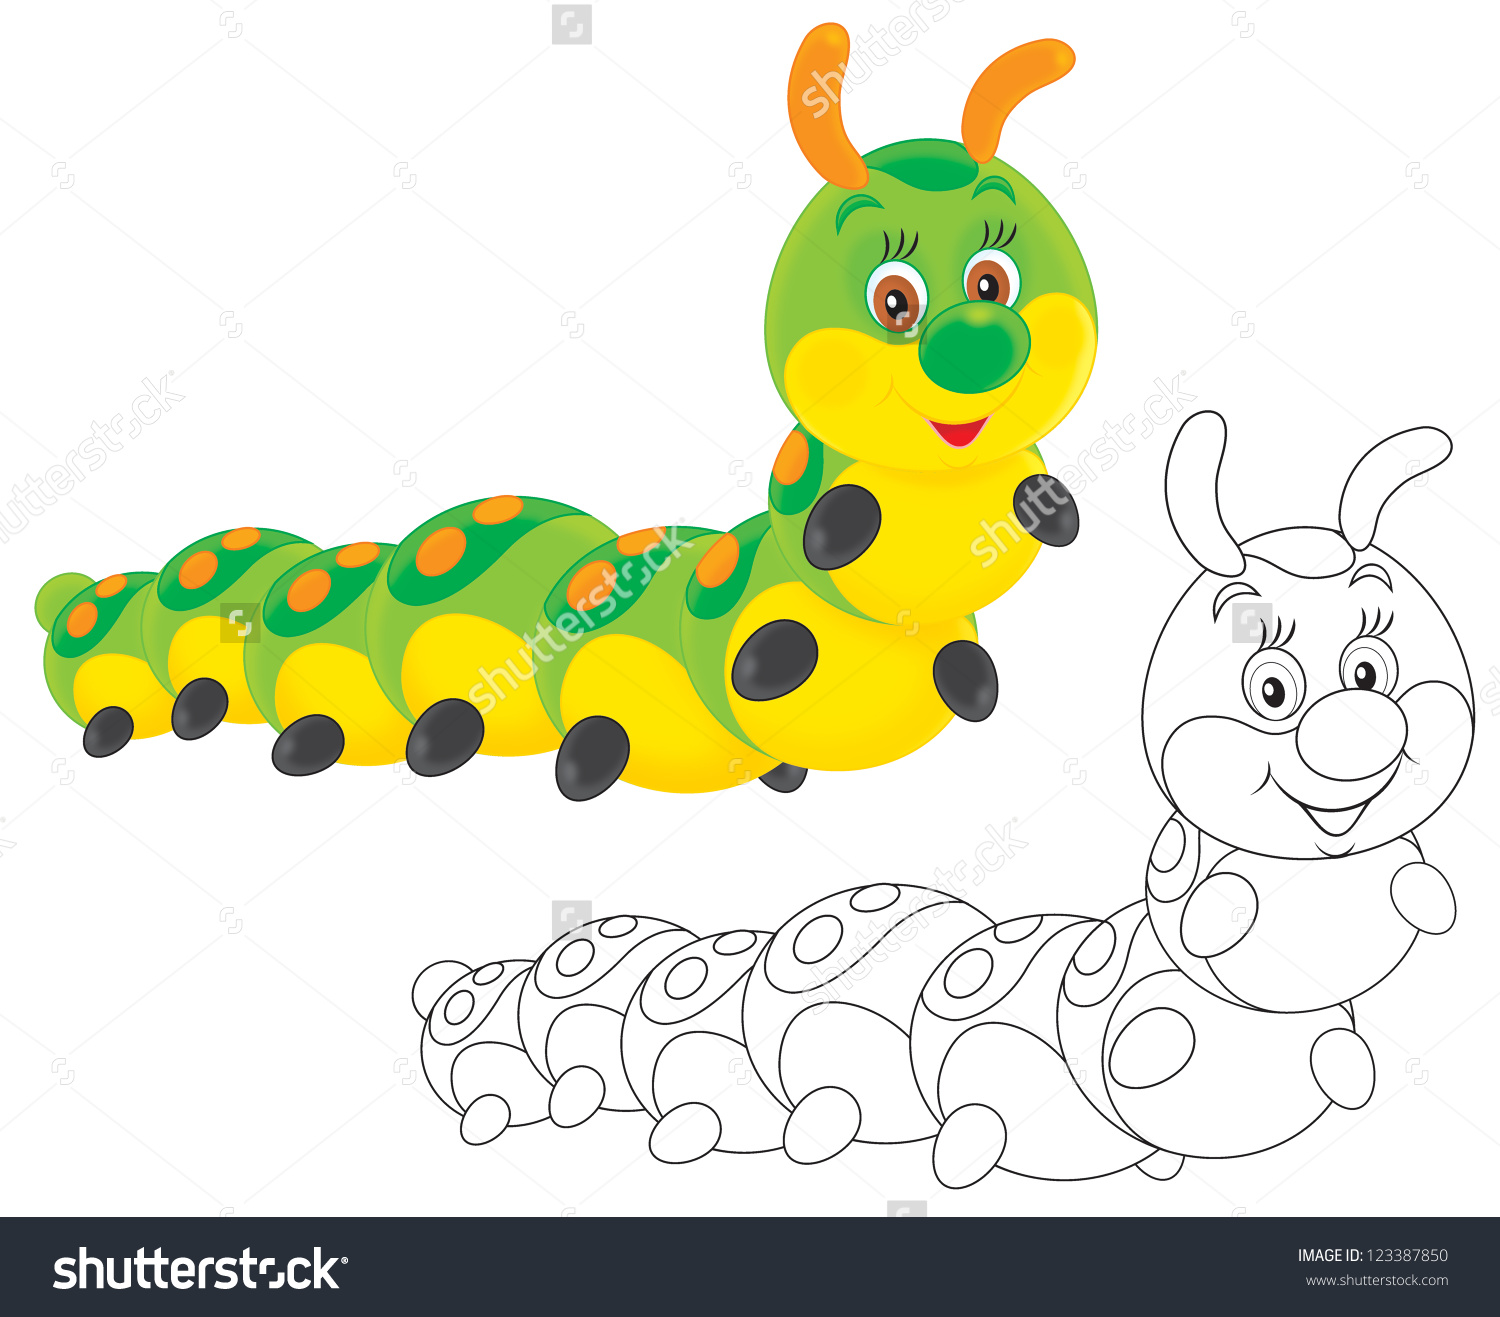 Caterpillar Friendly Smiling Stock Photo 123387850 : Shutterstock.